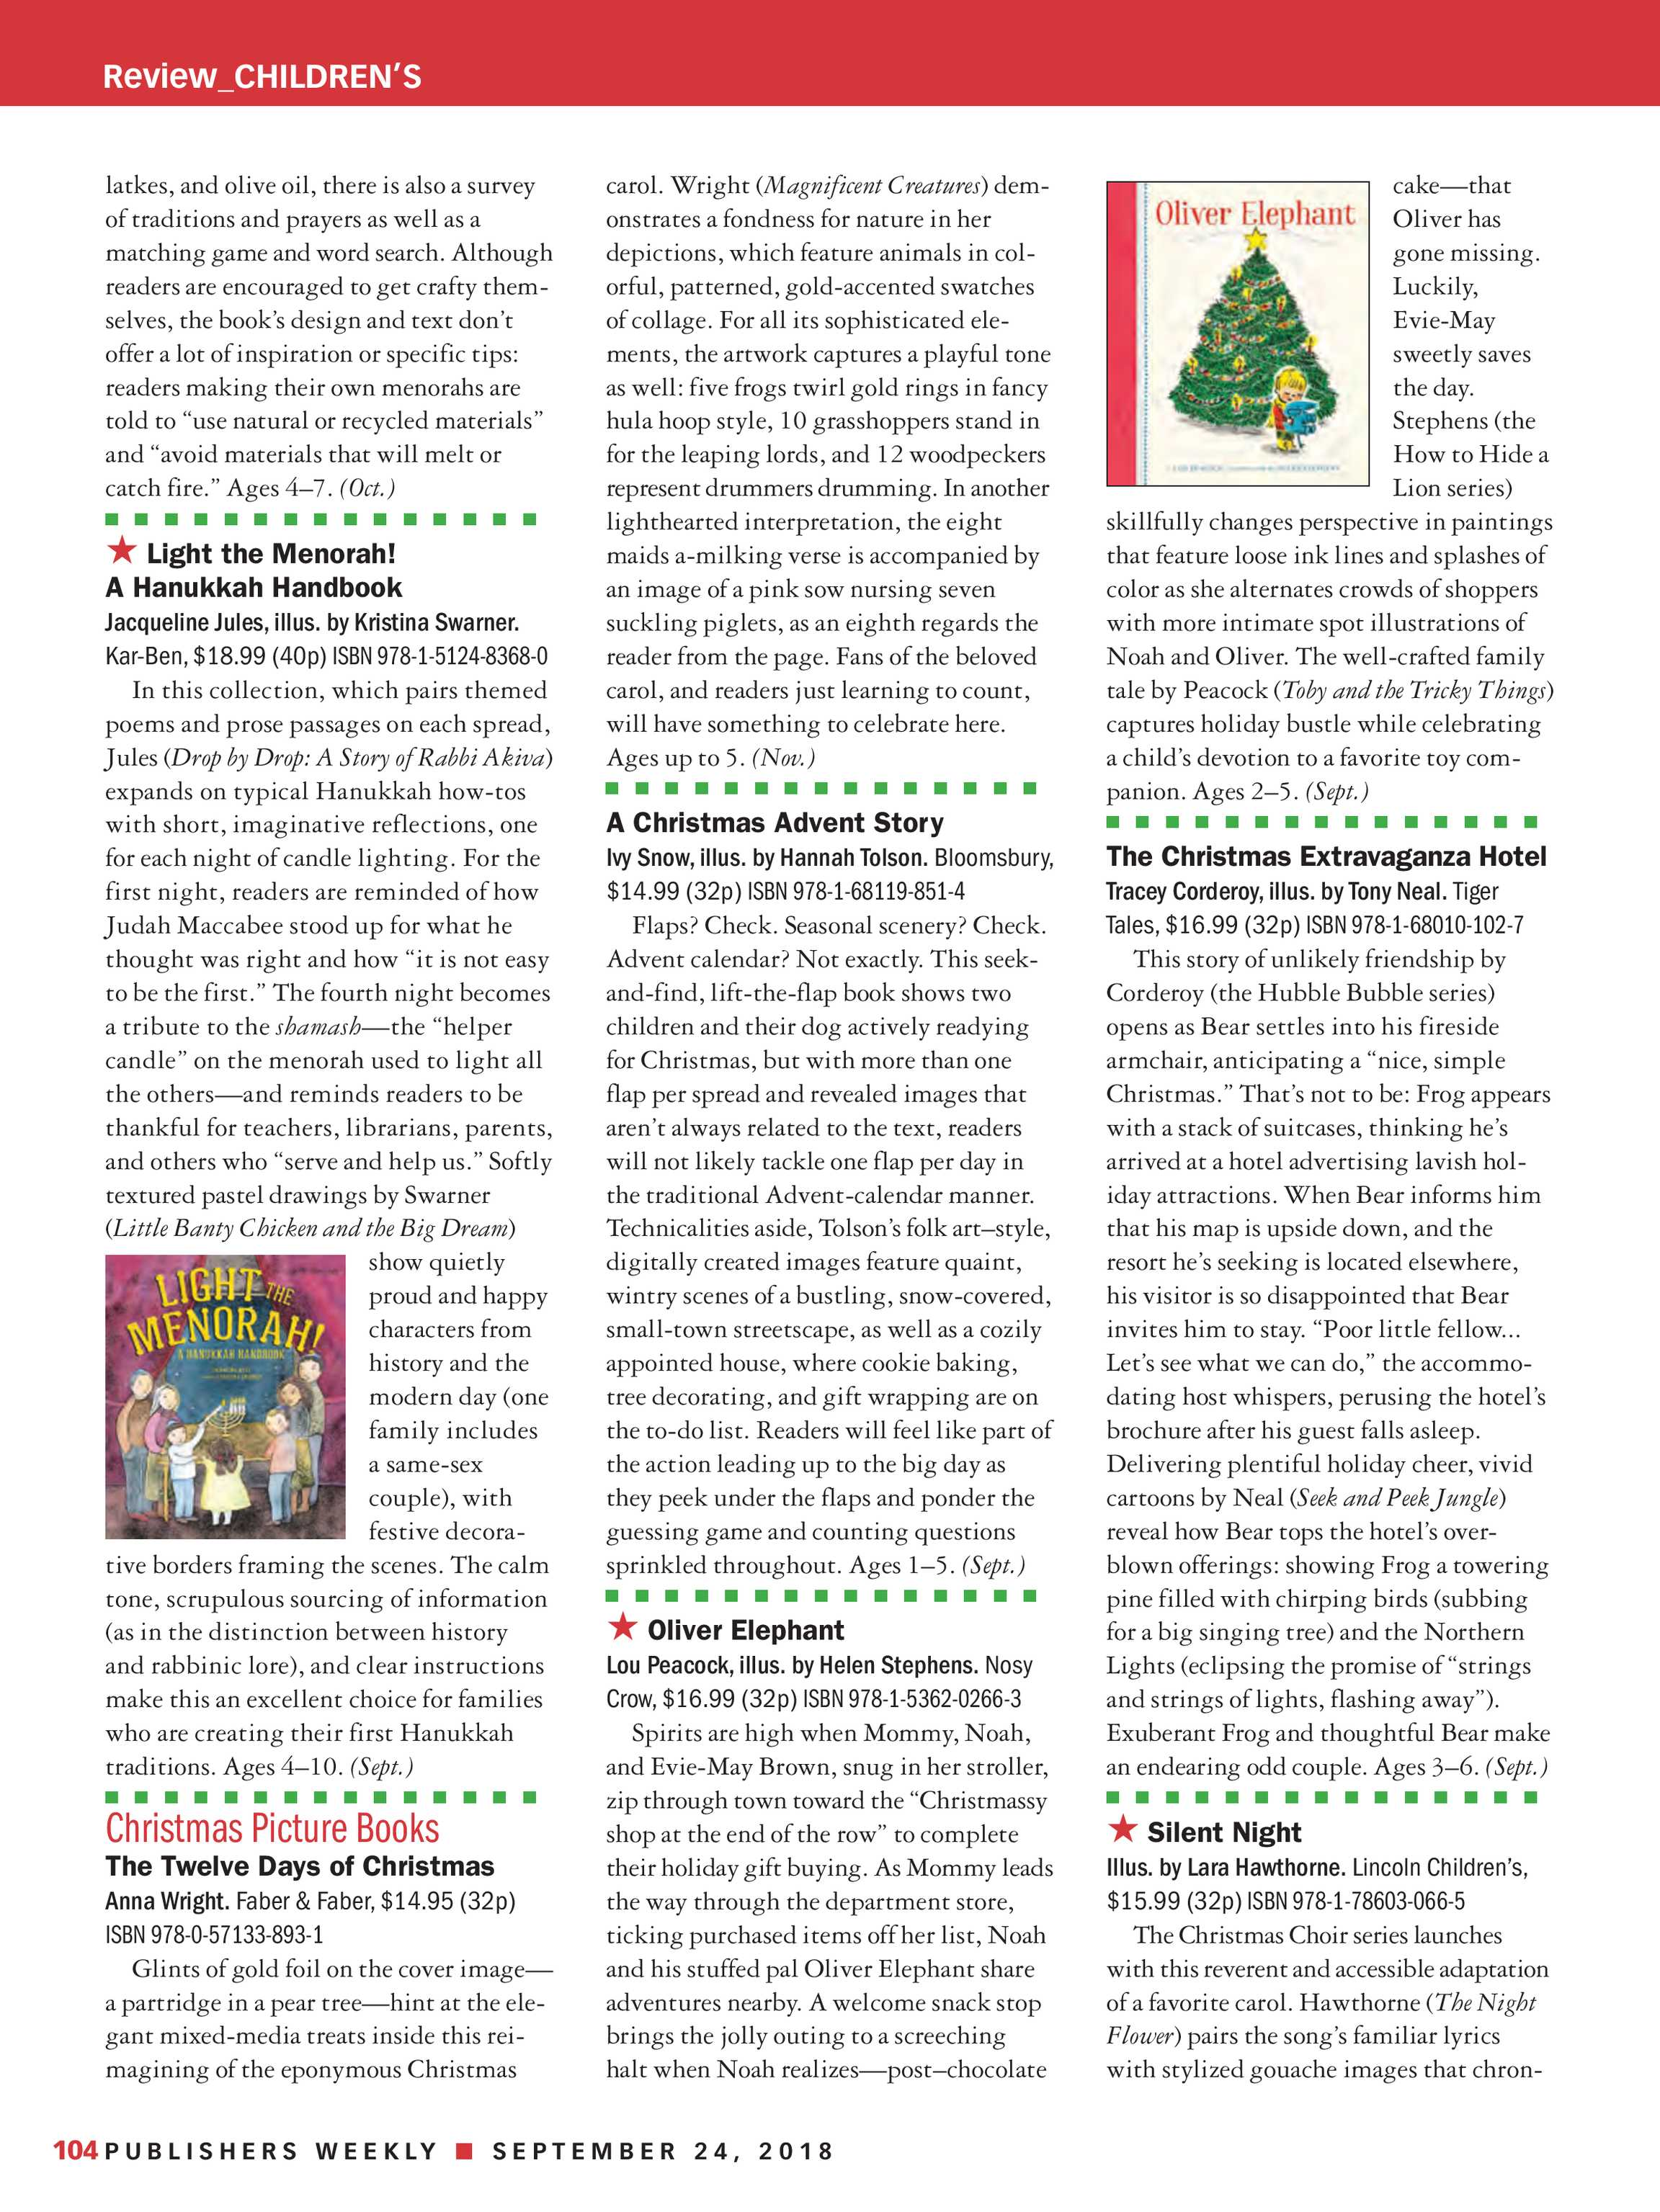 Publishers Weekly - September 24, 2018 - page 104